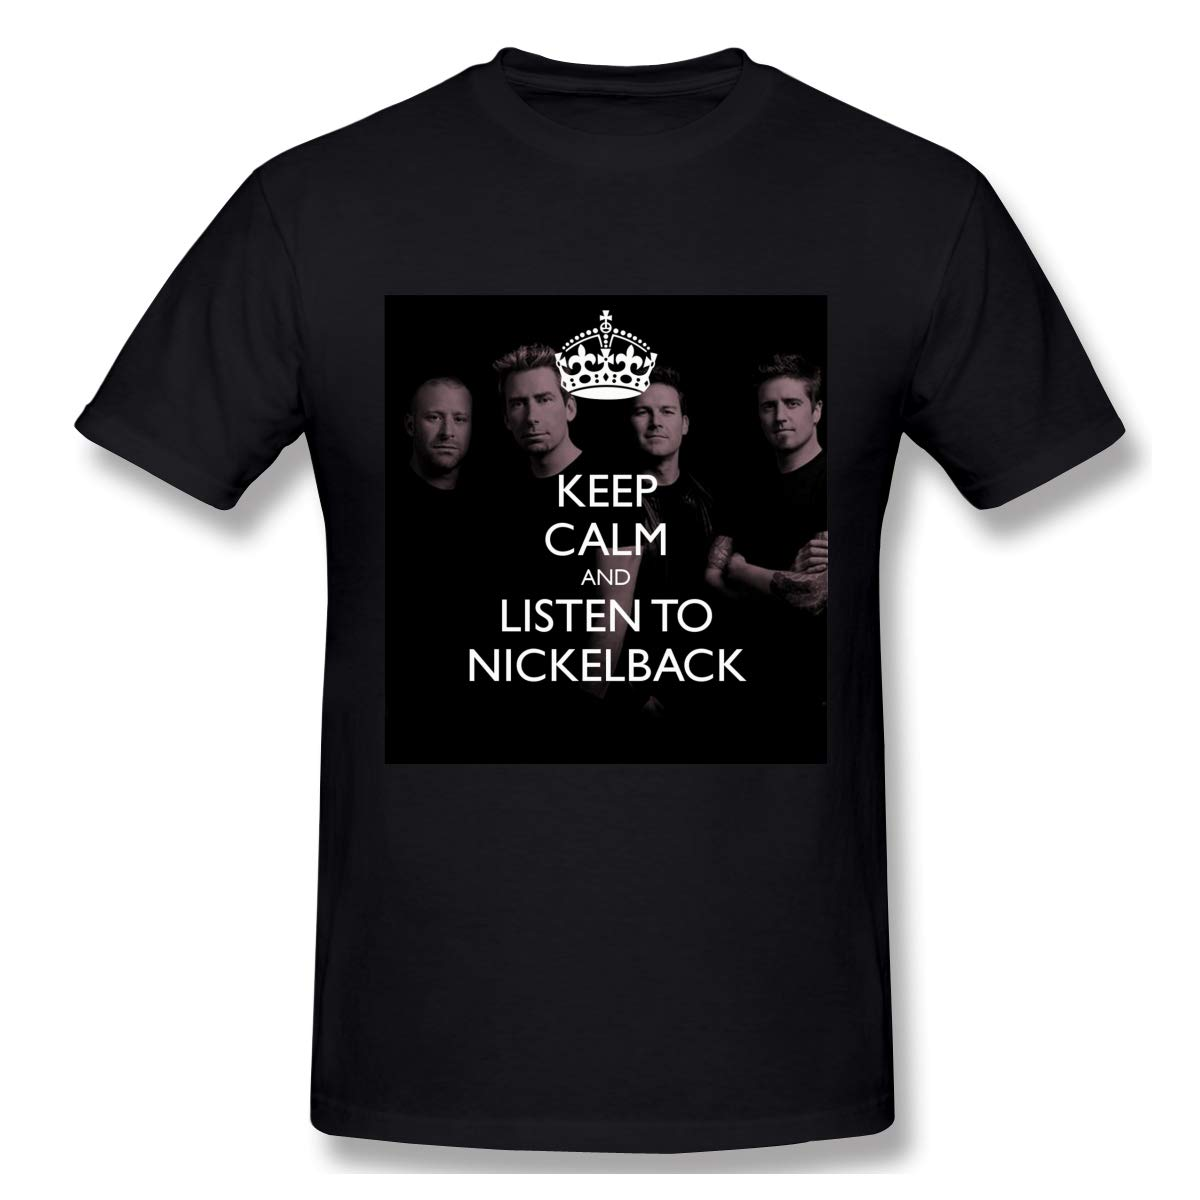 S Logo Of Keep Calm And Listen To Nickelback Cool Black T Shirts Short Sleeve